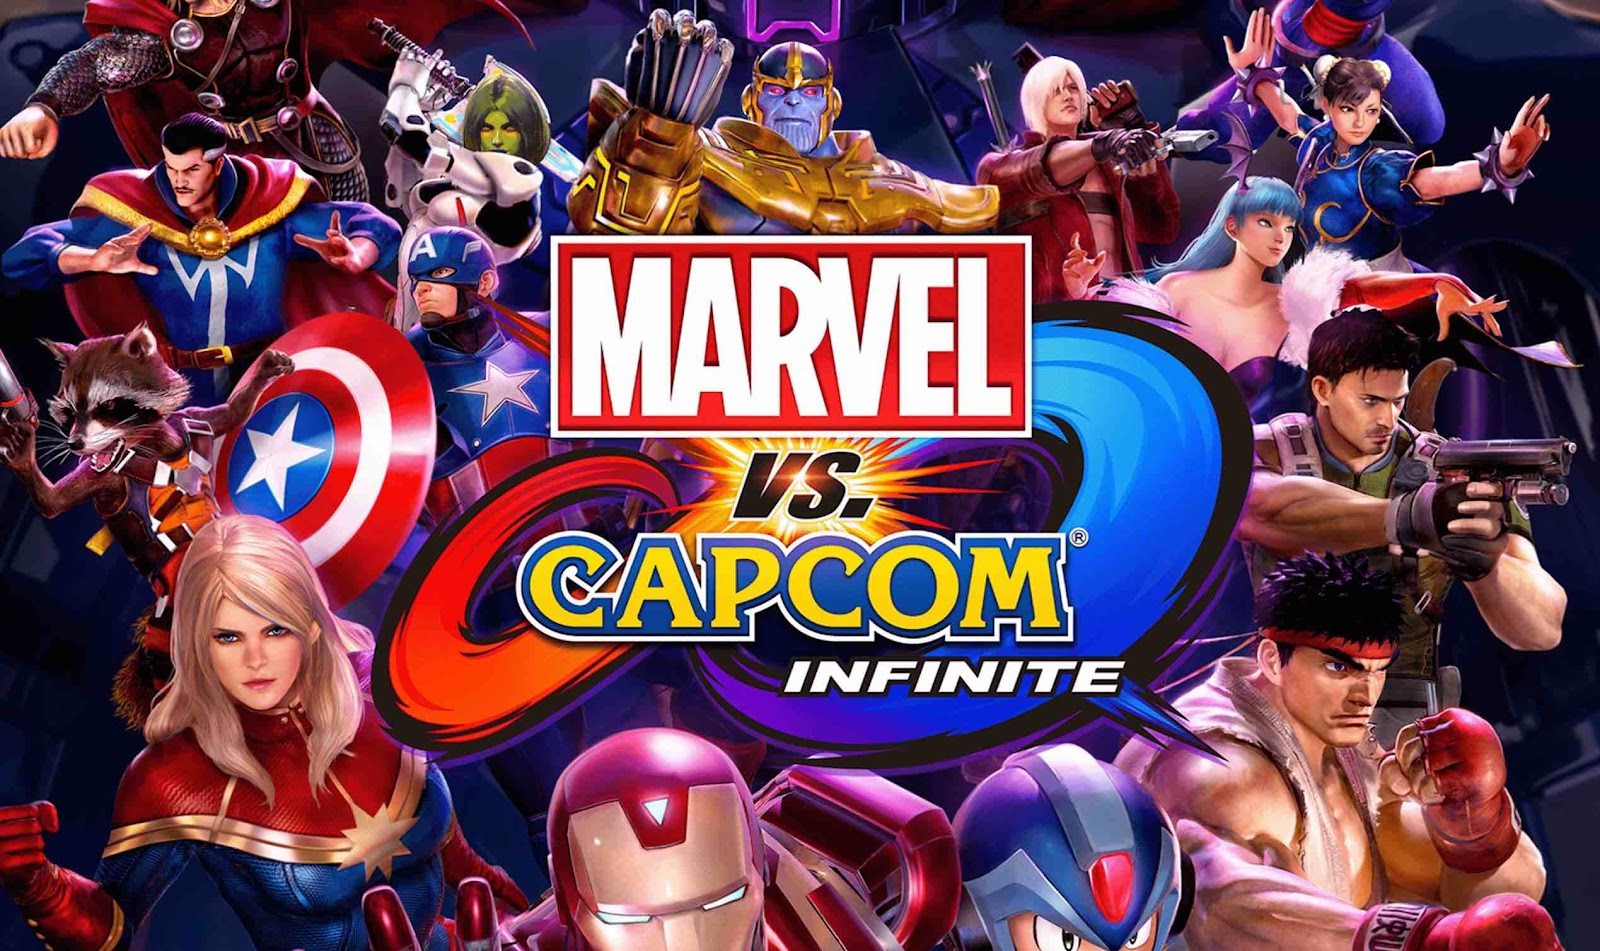 marvel_vs_capcom_infinite.jpg